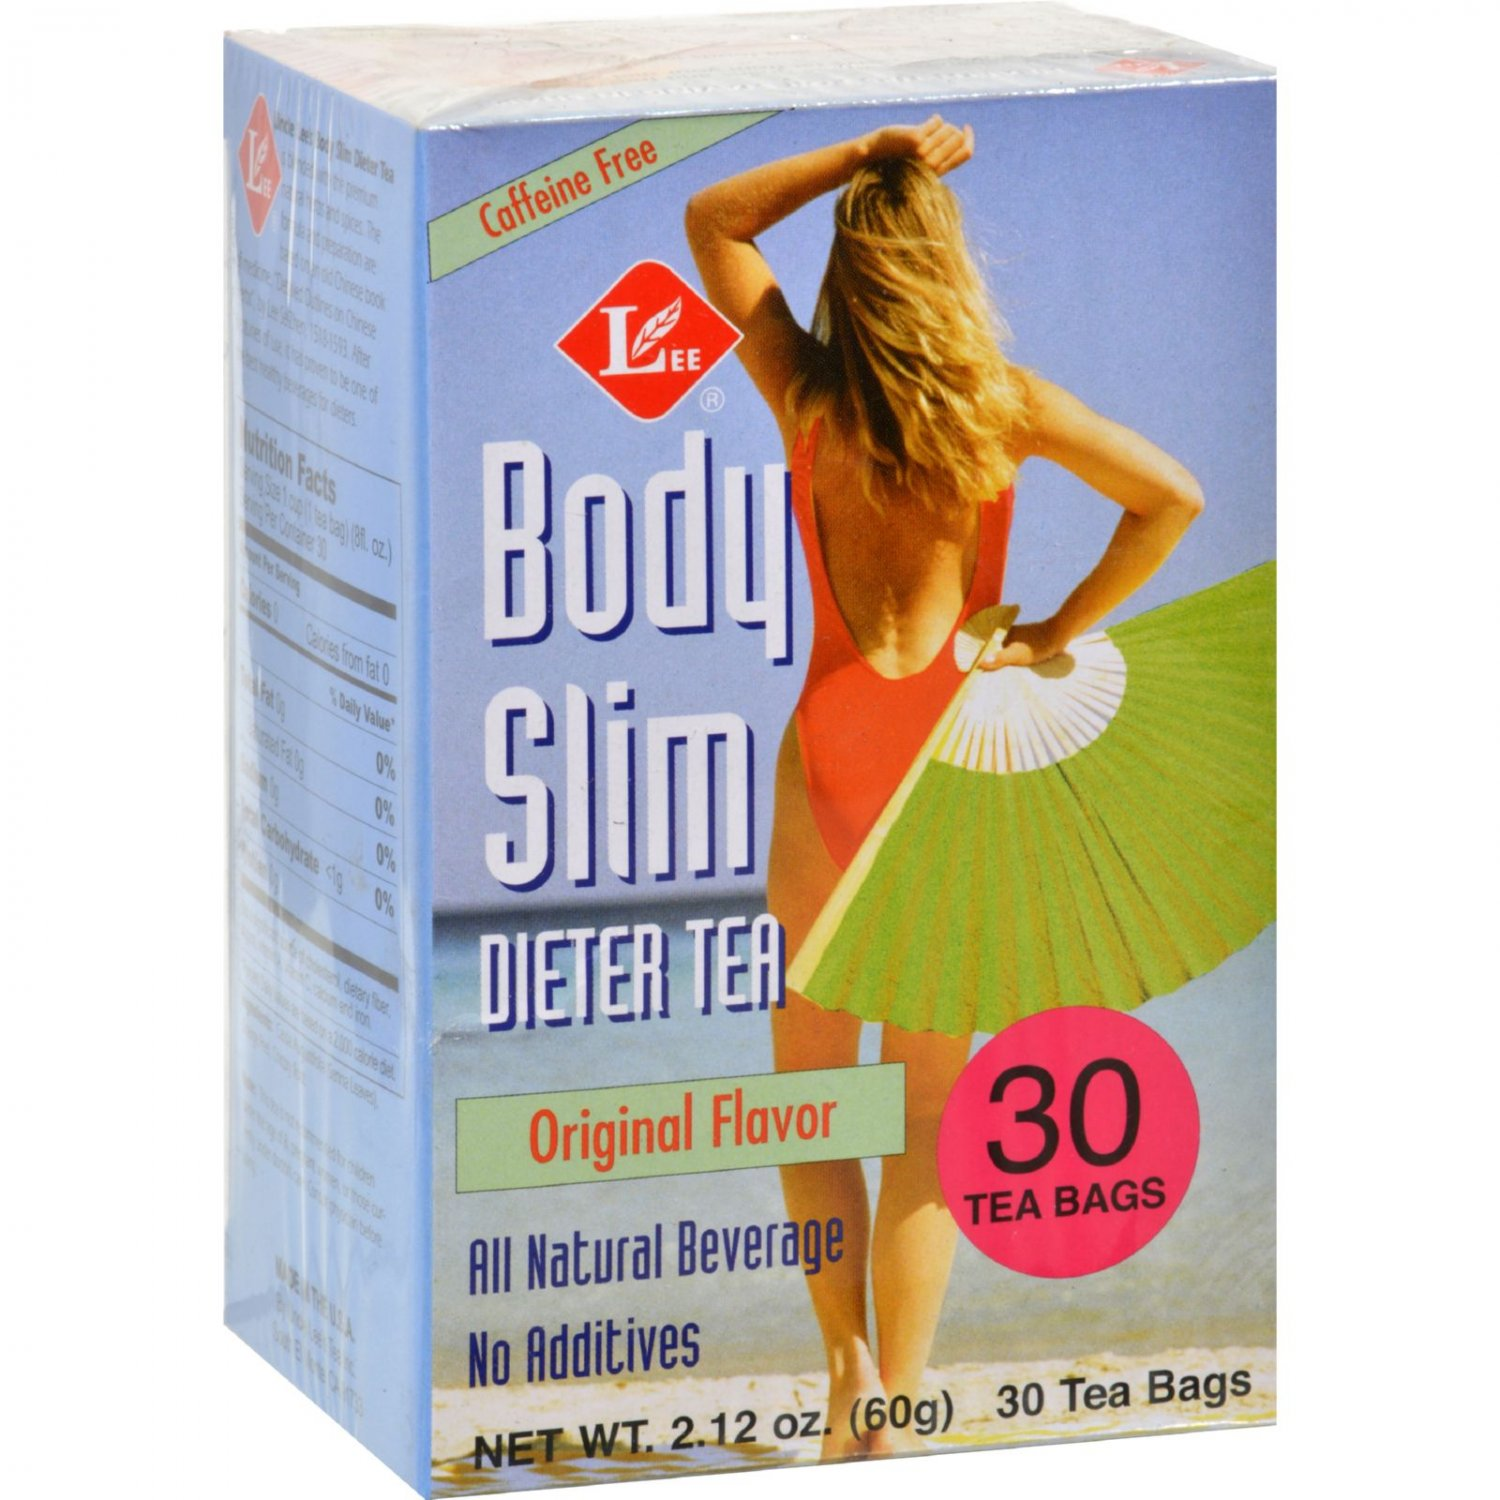 Uncle Lee's Tea Body Slim Dieter Tea Original Flavor - Caffeine Free - 30 Tea Bags